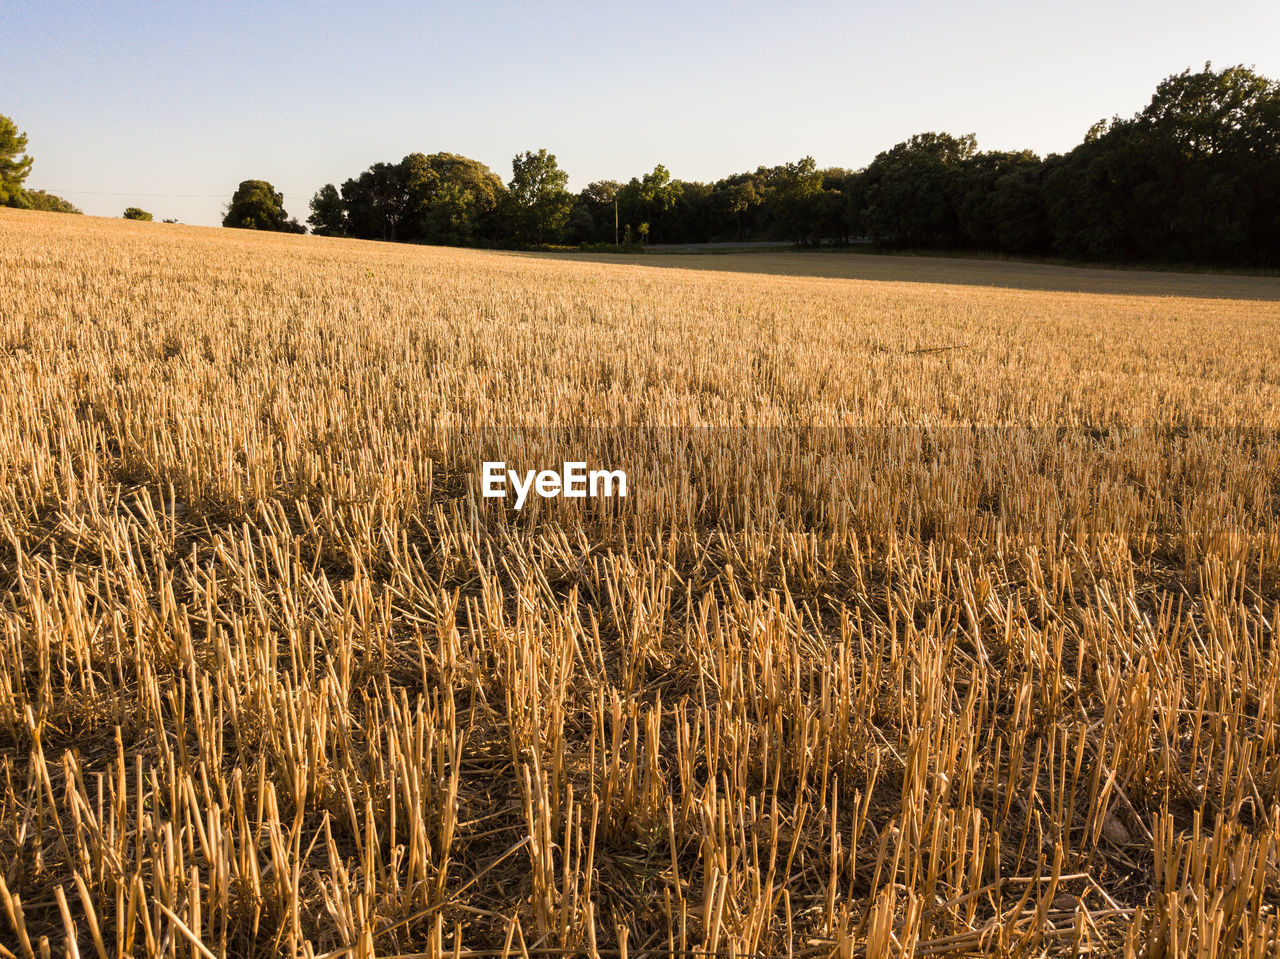 tranquility, landscape, field, rural scene, growth, plant, sky, agriculture, tranquil scene, land, beauty in nature, environment, scenics - nature, crop, no people, nature, day, tree, cereal plant, farm, outdoors, stalk, plantation